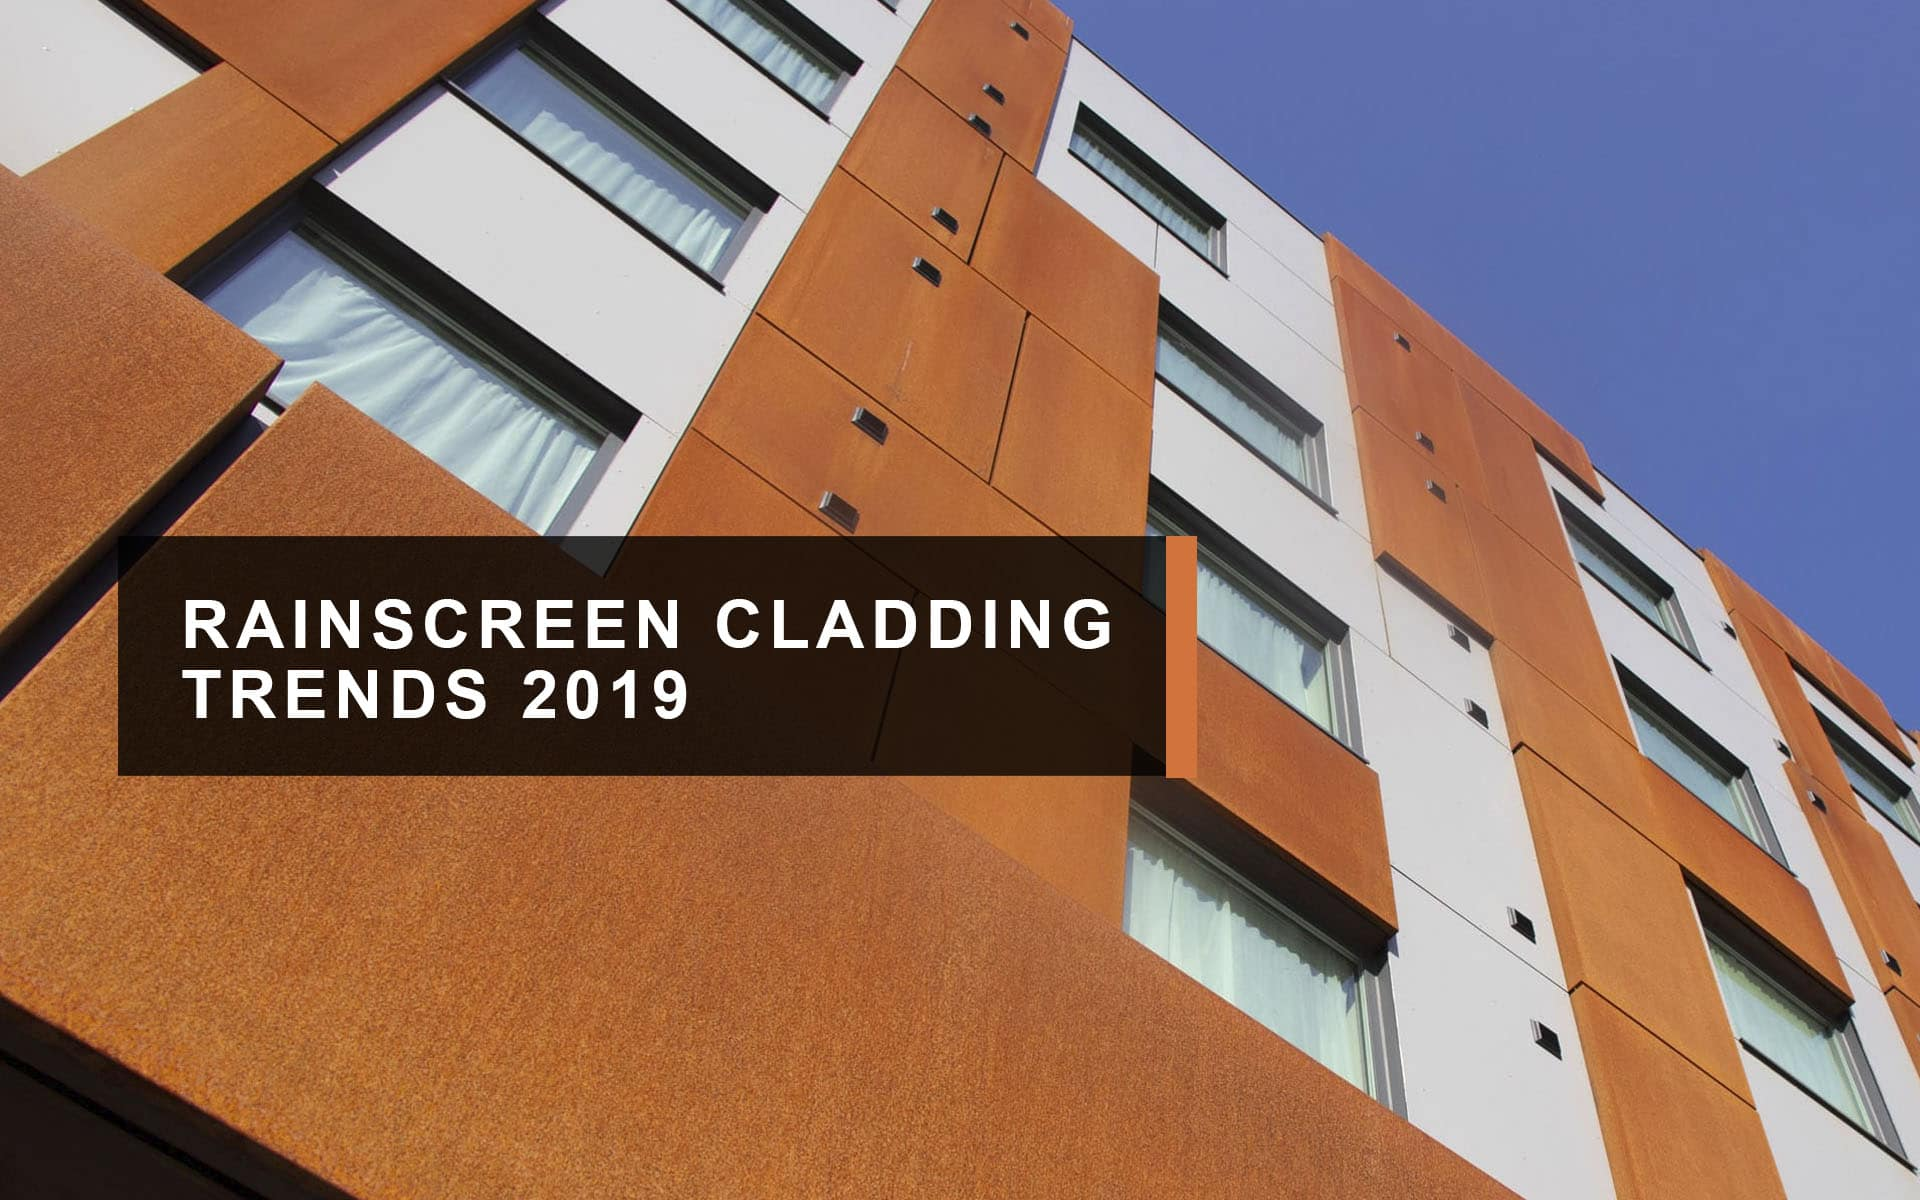 RAINSCREEN CLADDING TRENDS 2019